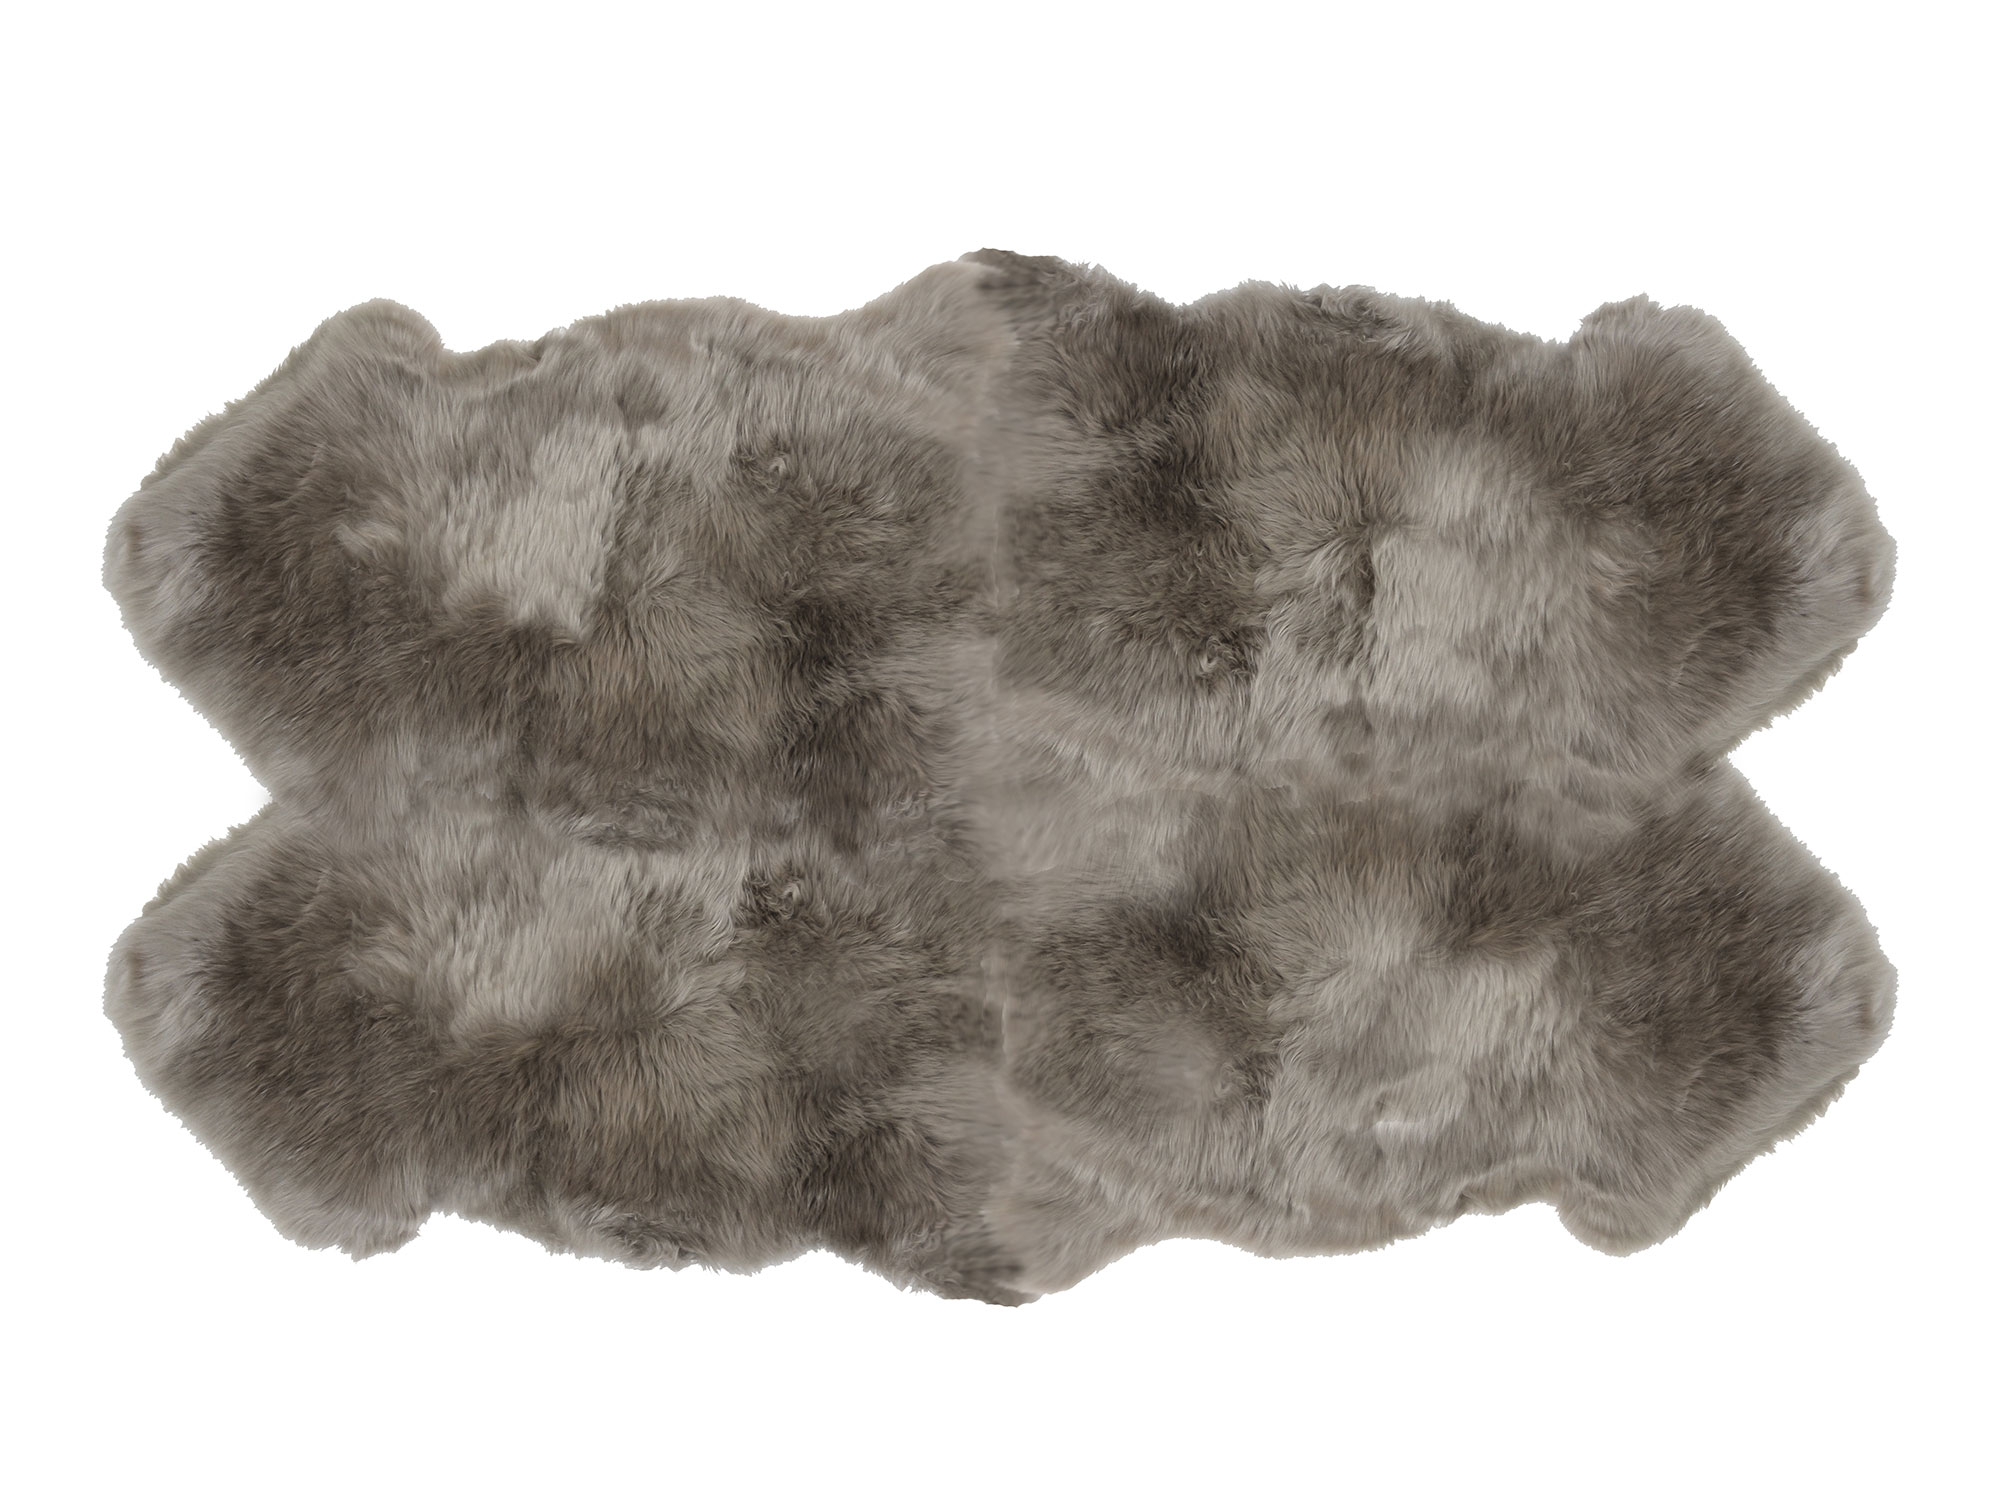 Sheepskin 4 Pelt Large Fur Rugs Gray